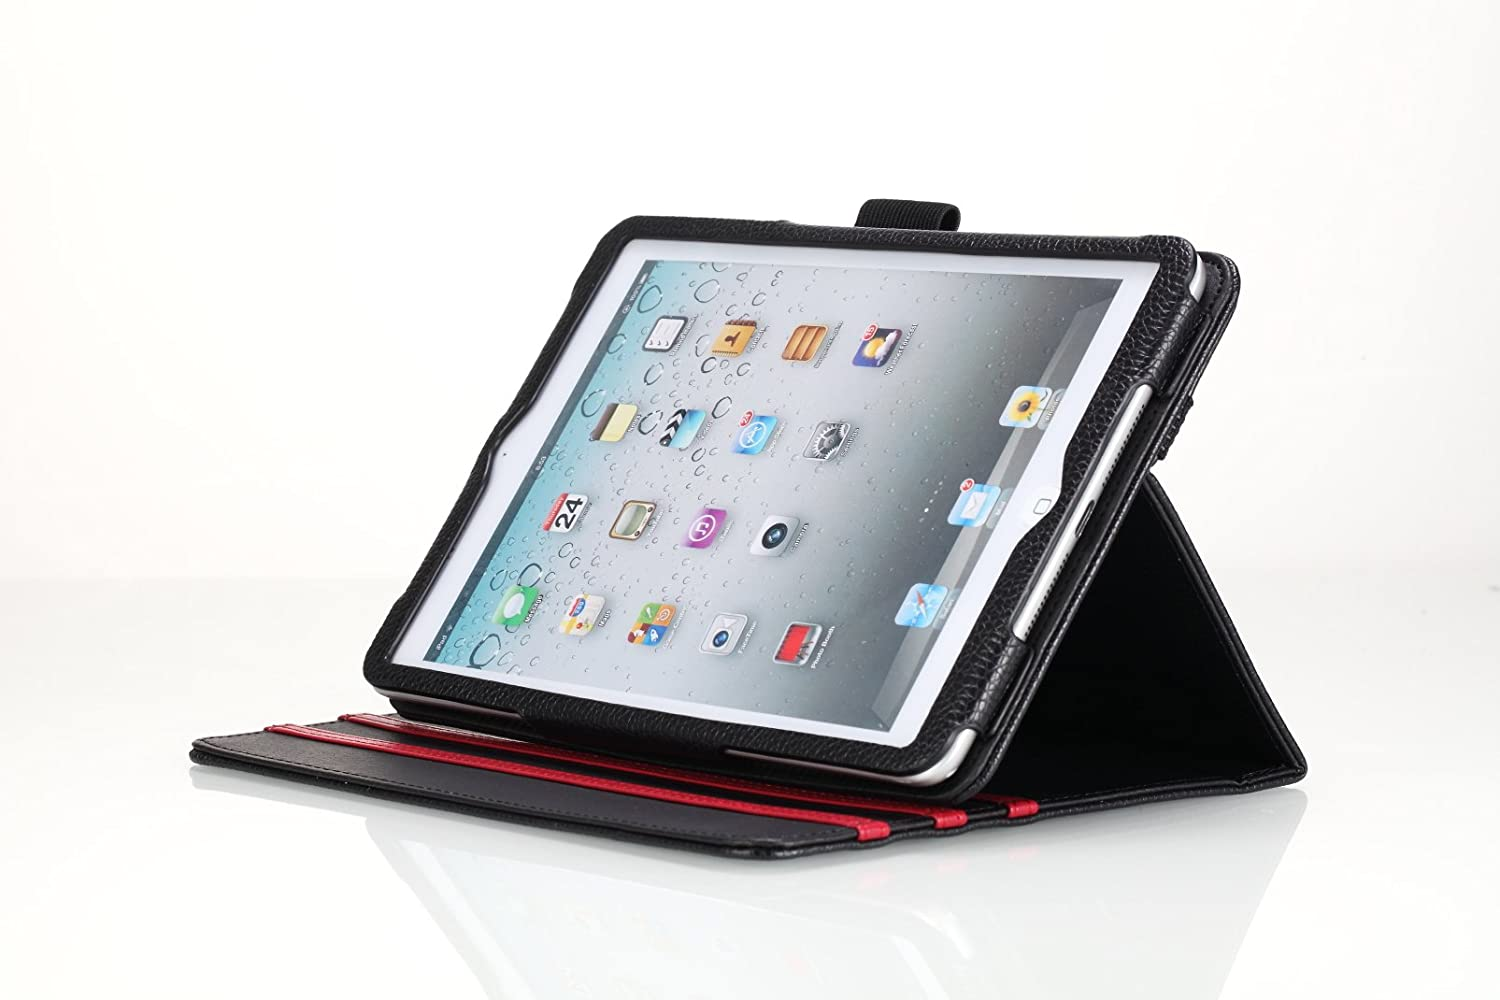 iPad Mini 2 Poetic Durabook Case